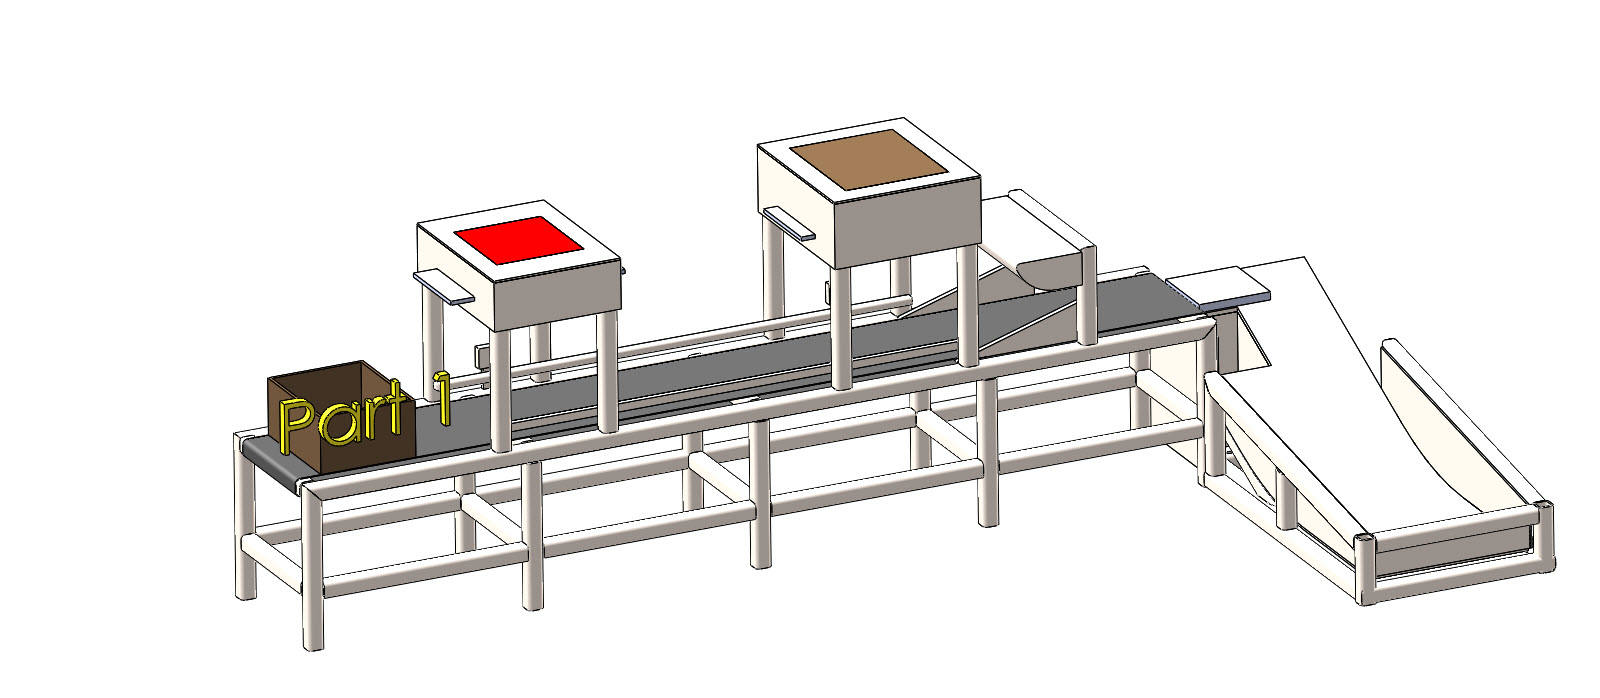 SolidWorks Event-Based Motion: Packaging Machine Part 1